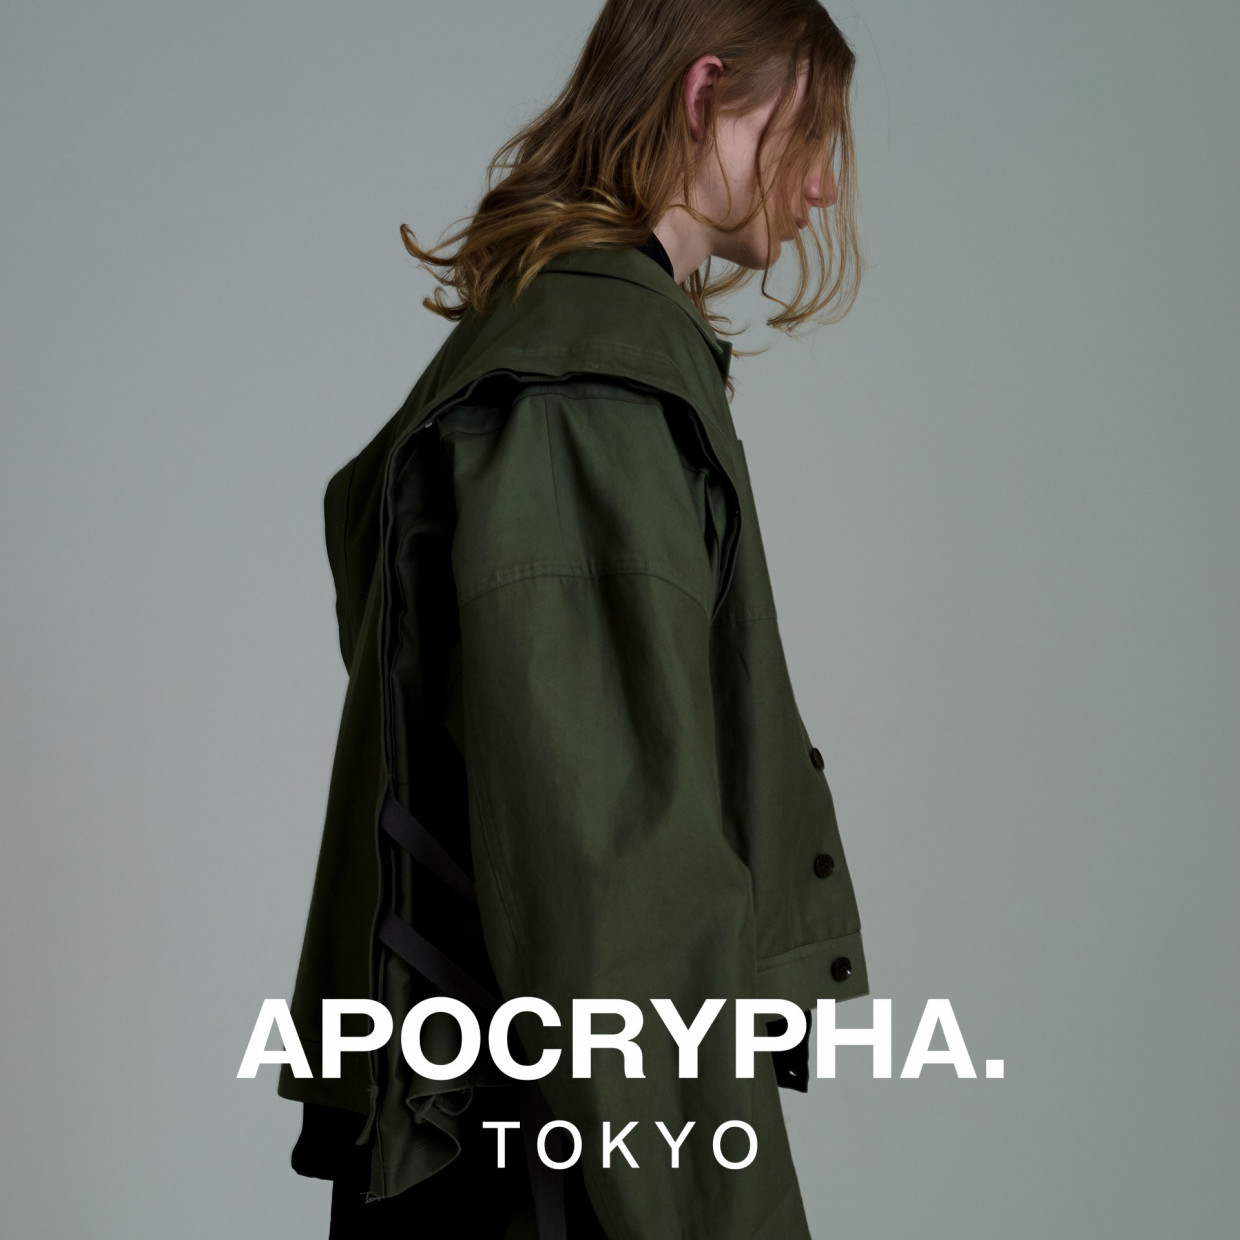 APOCRYPHA. But, shop for a limited time is opened